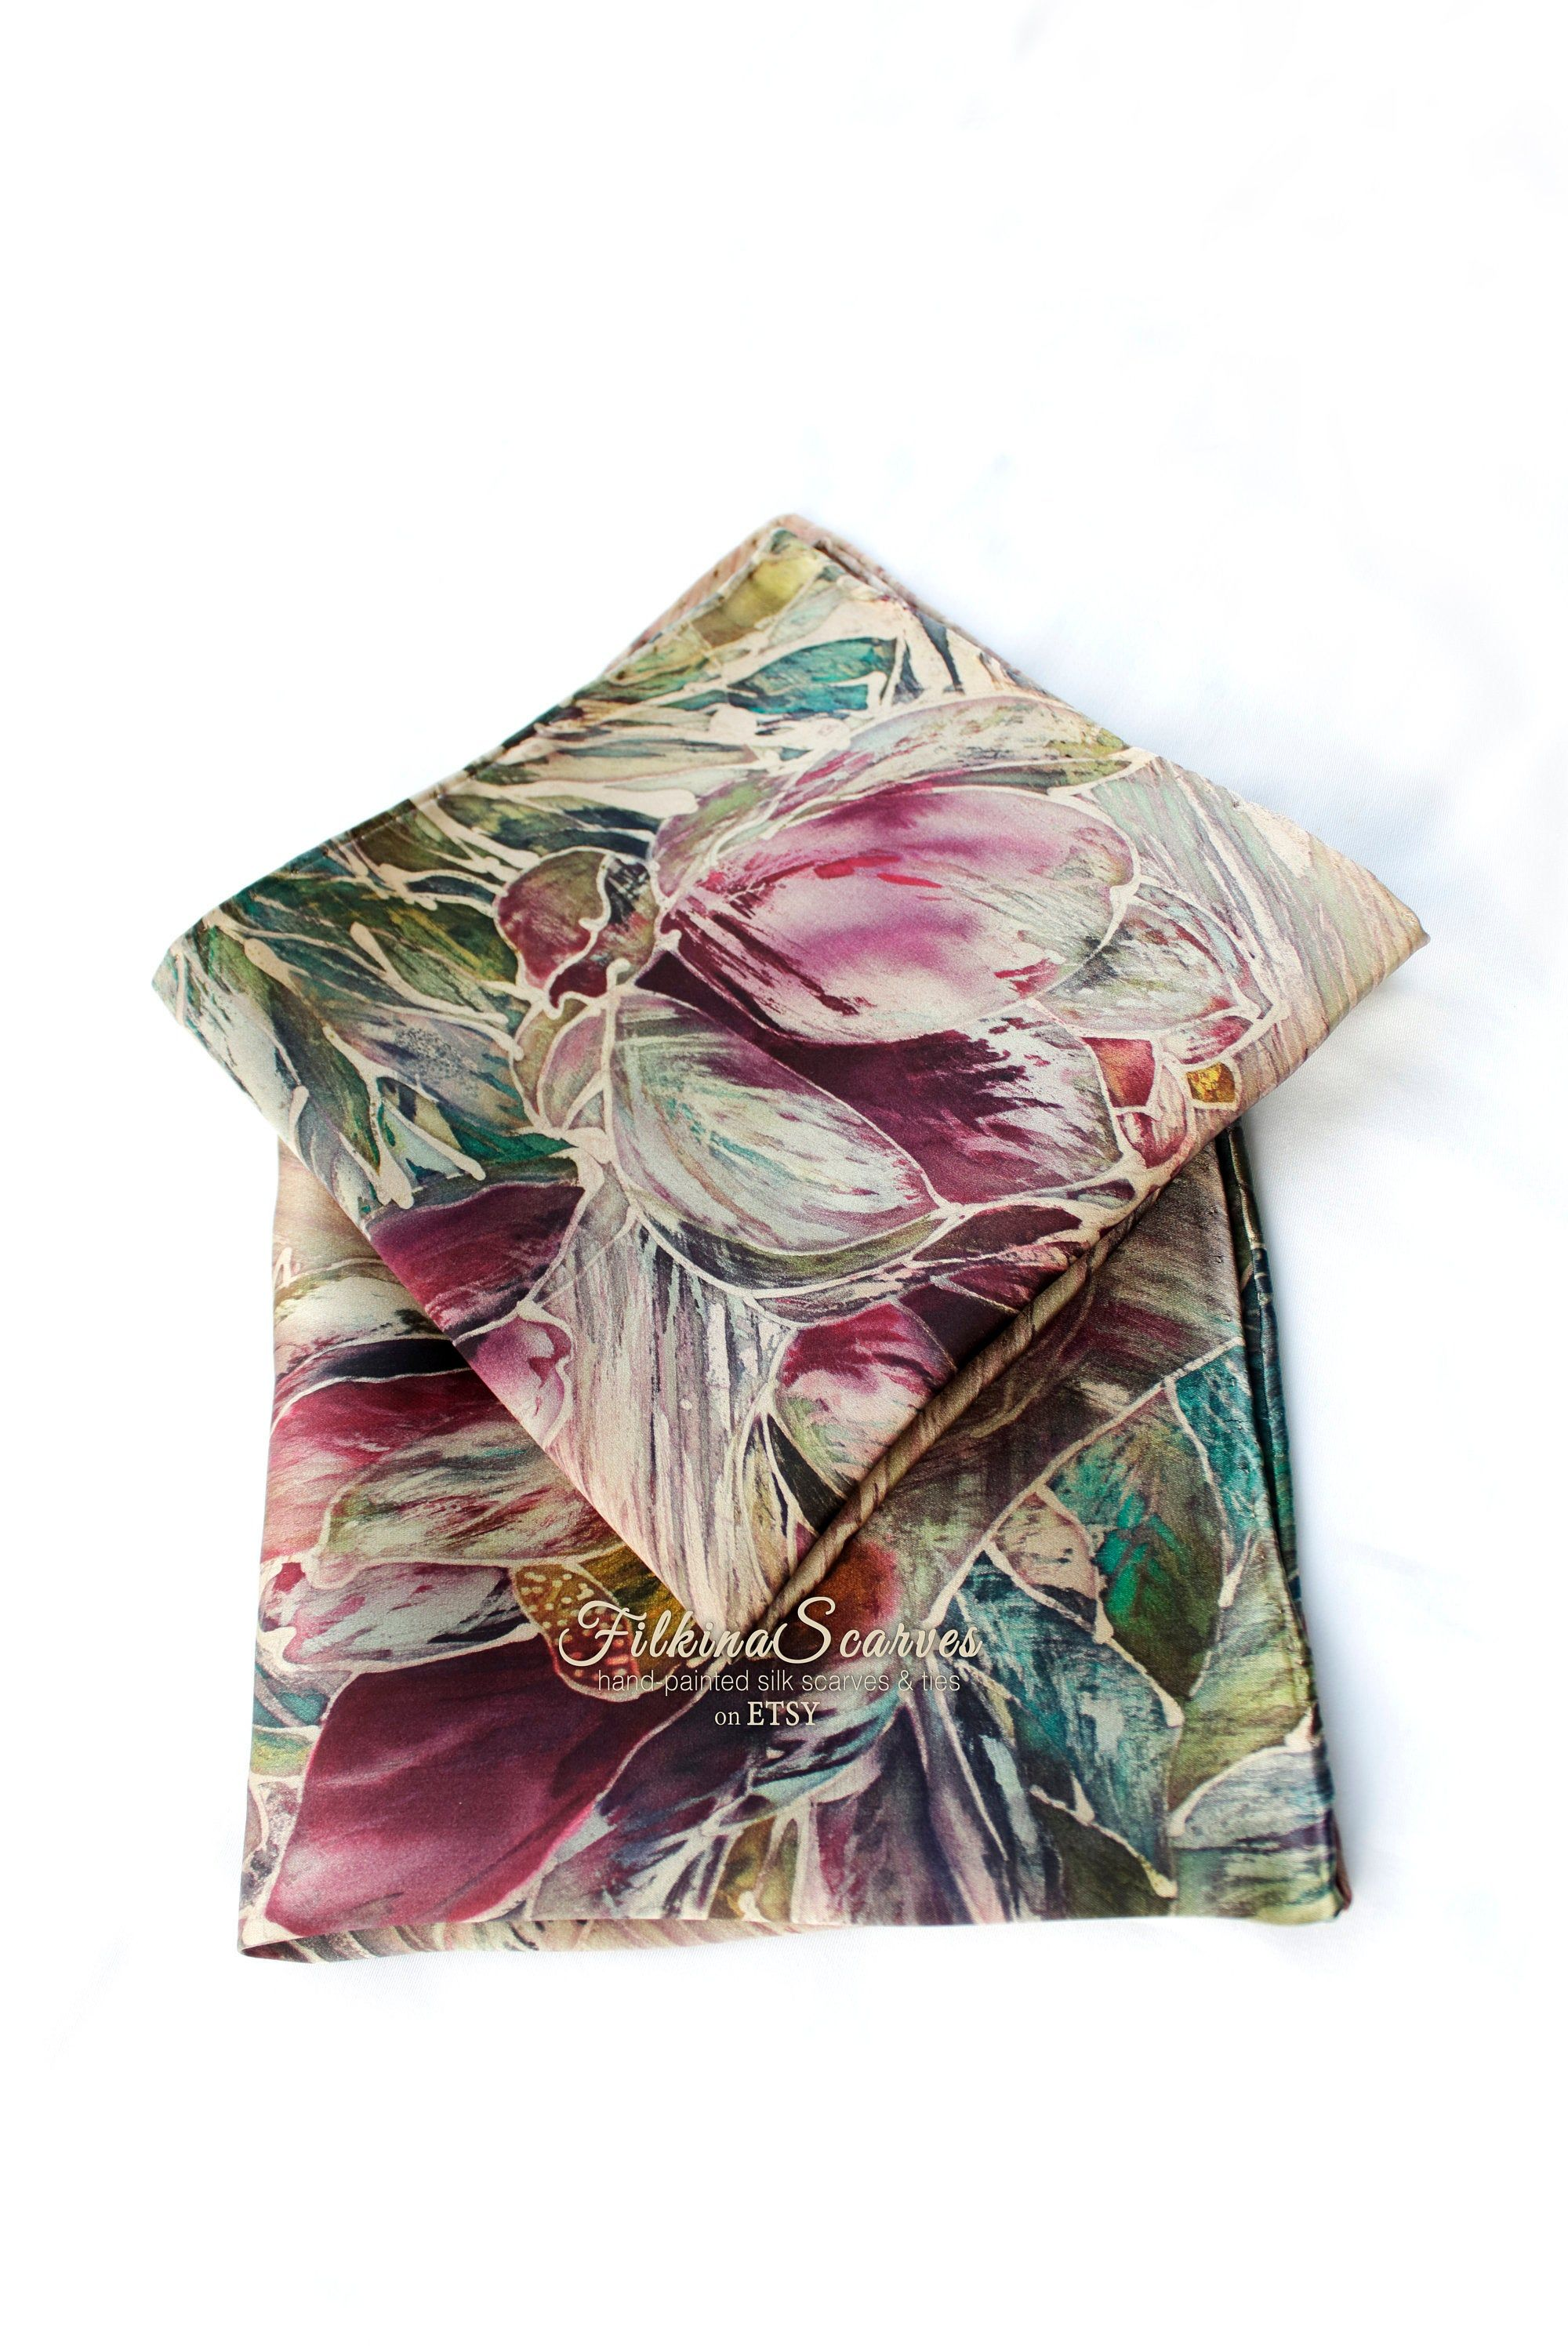 OOAK Wedding Men's Silk Pocket Square whit Lilies. HAND-PAINTED handkerchief. Groomsmen gift for him #pocketsquares